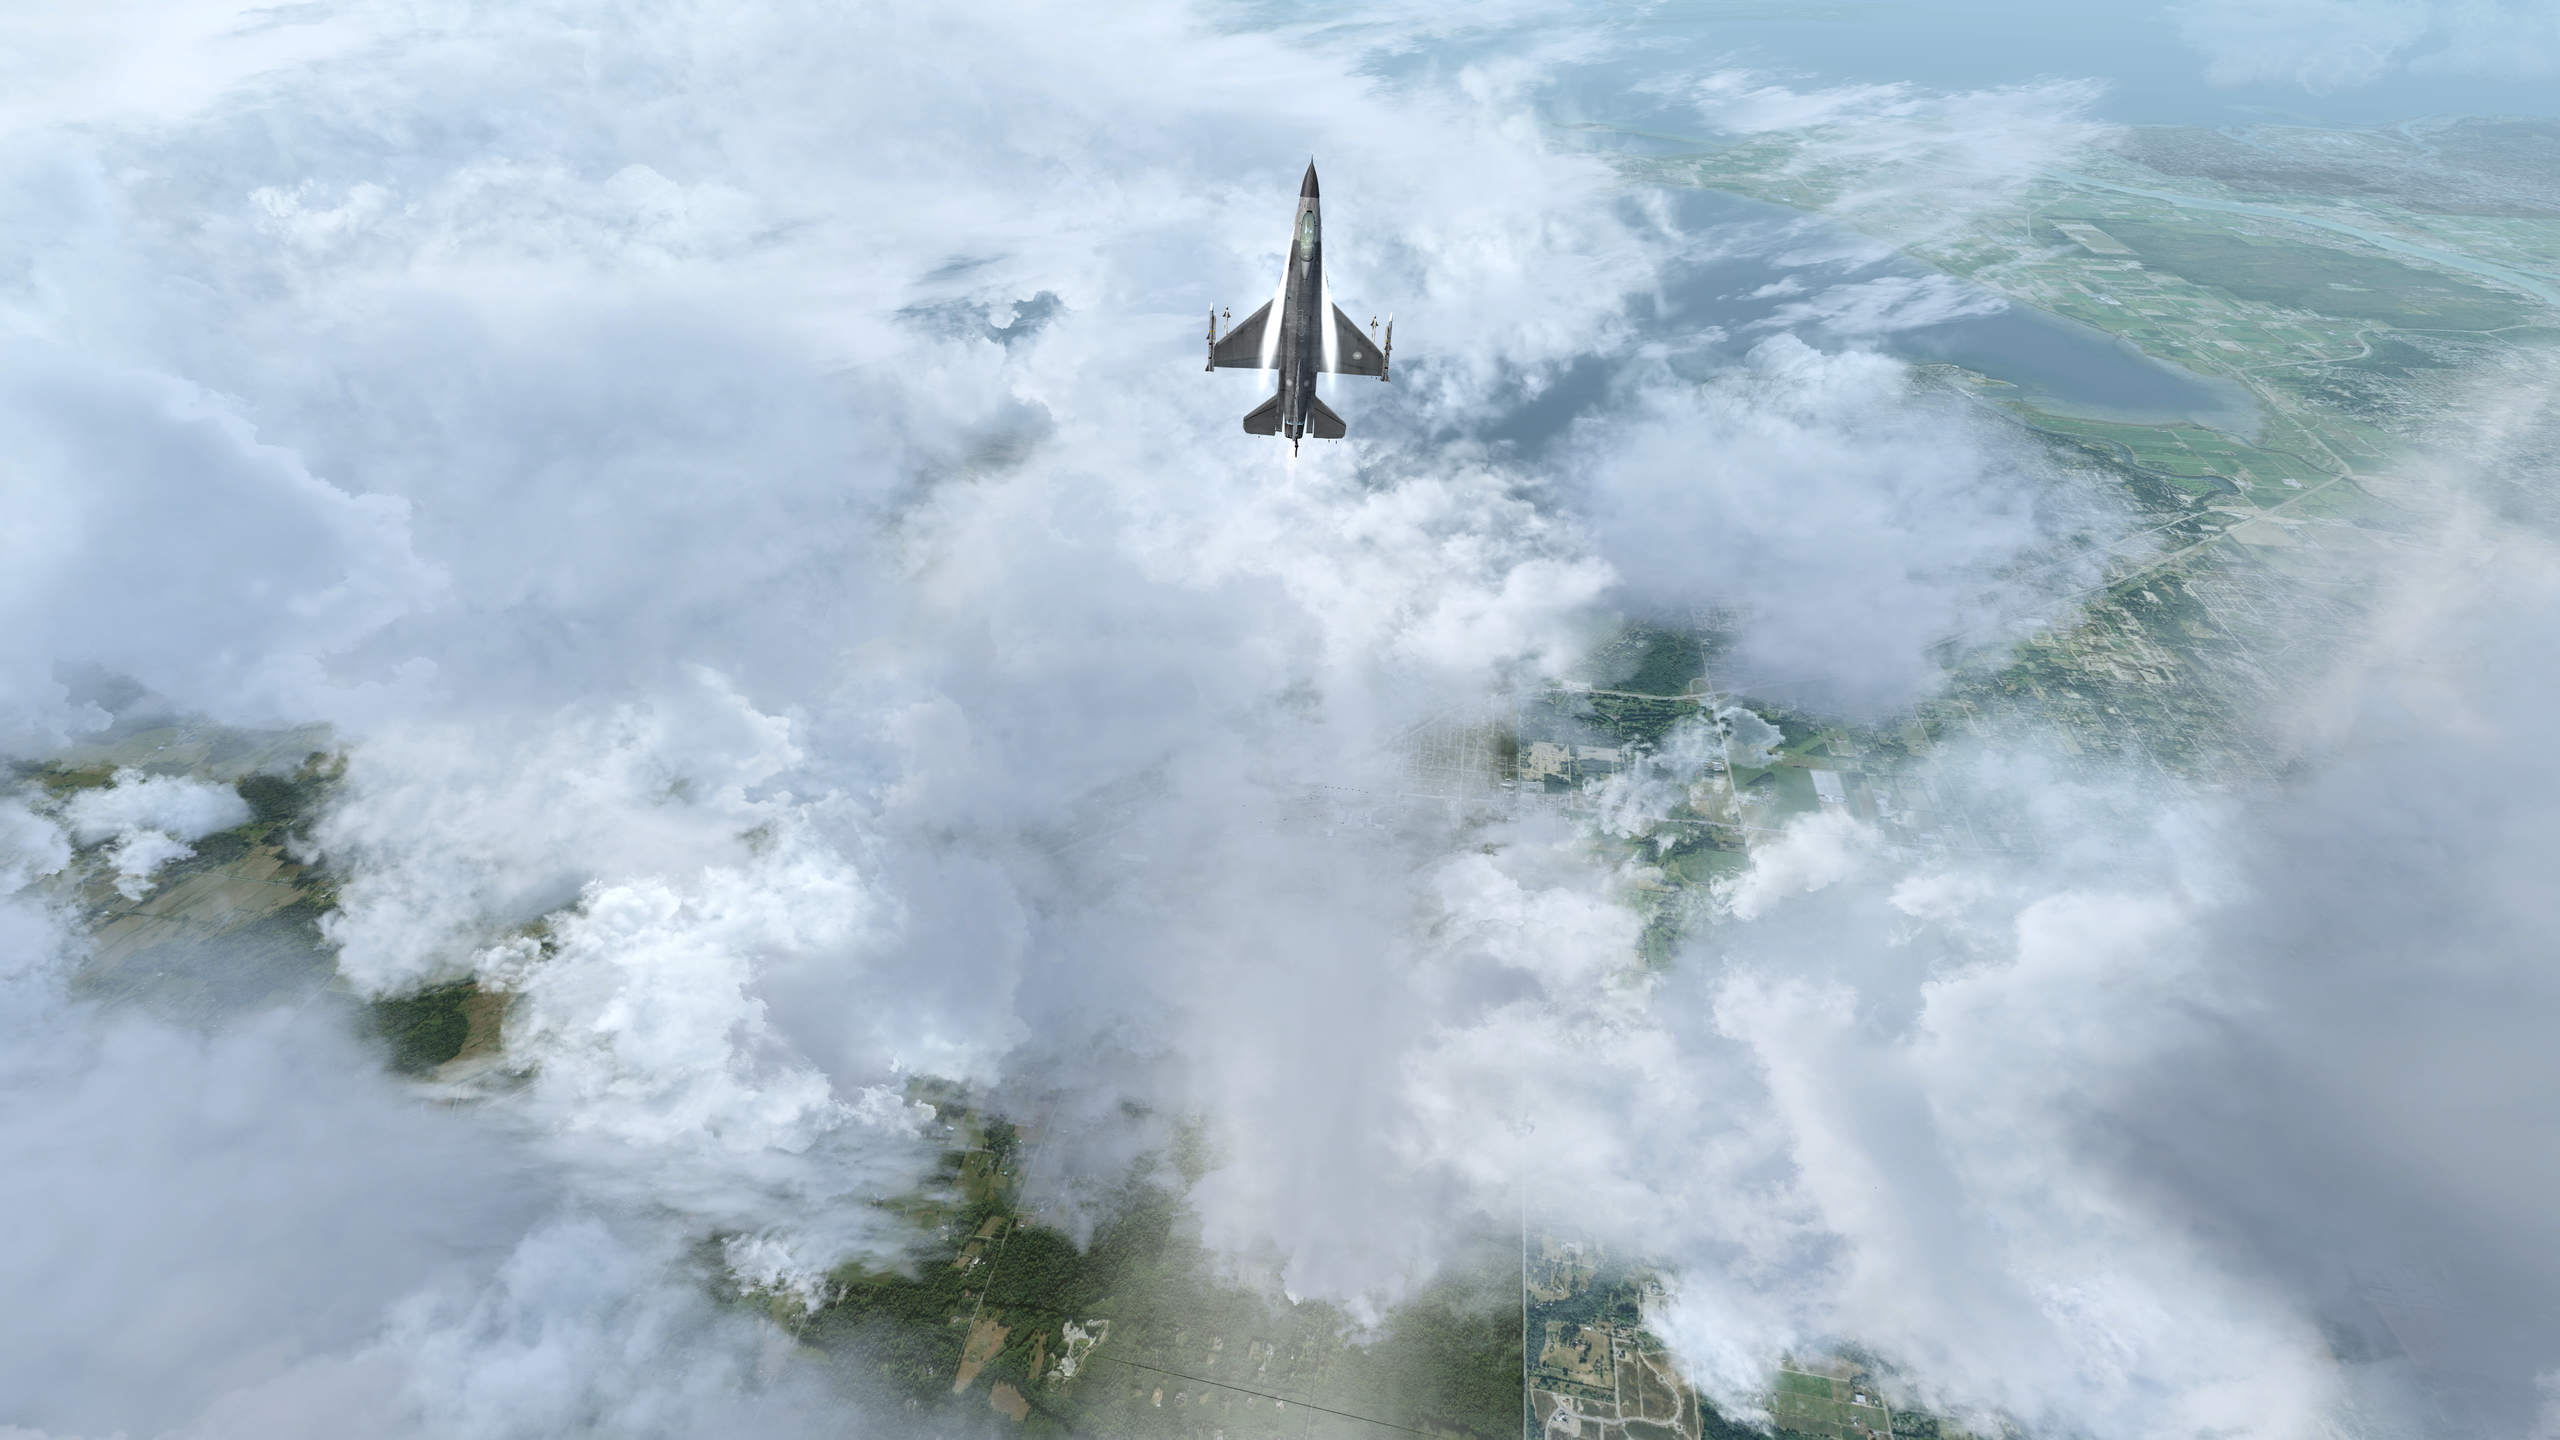 Flight Simulator X Wallpaper: Microsoft Flight Simulator Full HD Wallpaper And